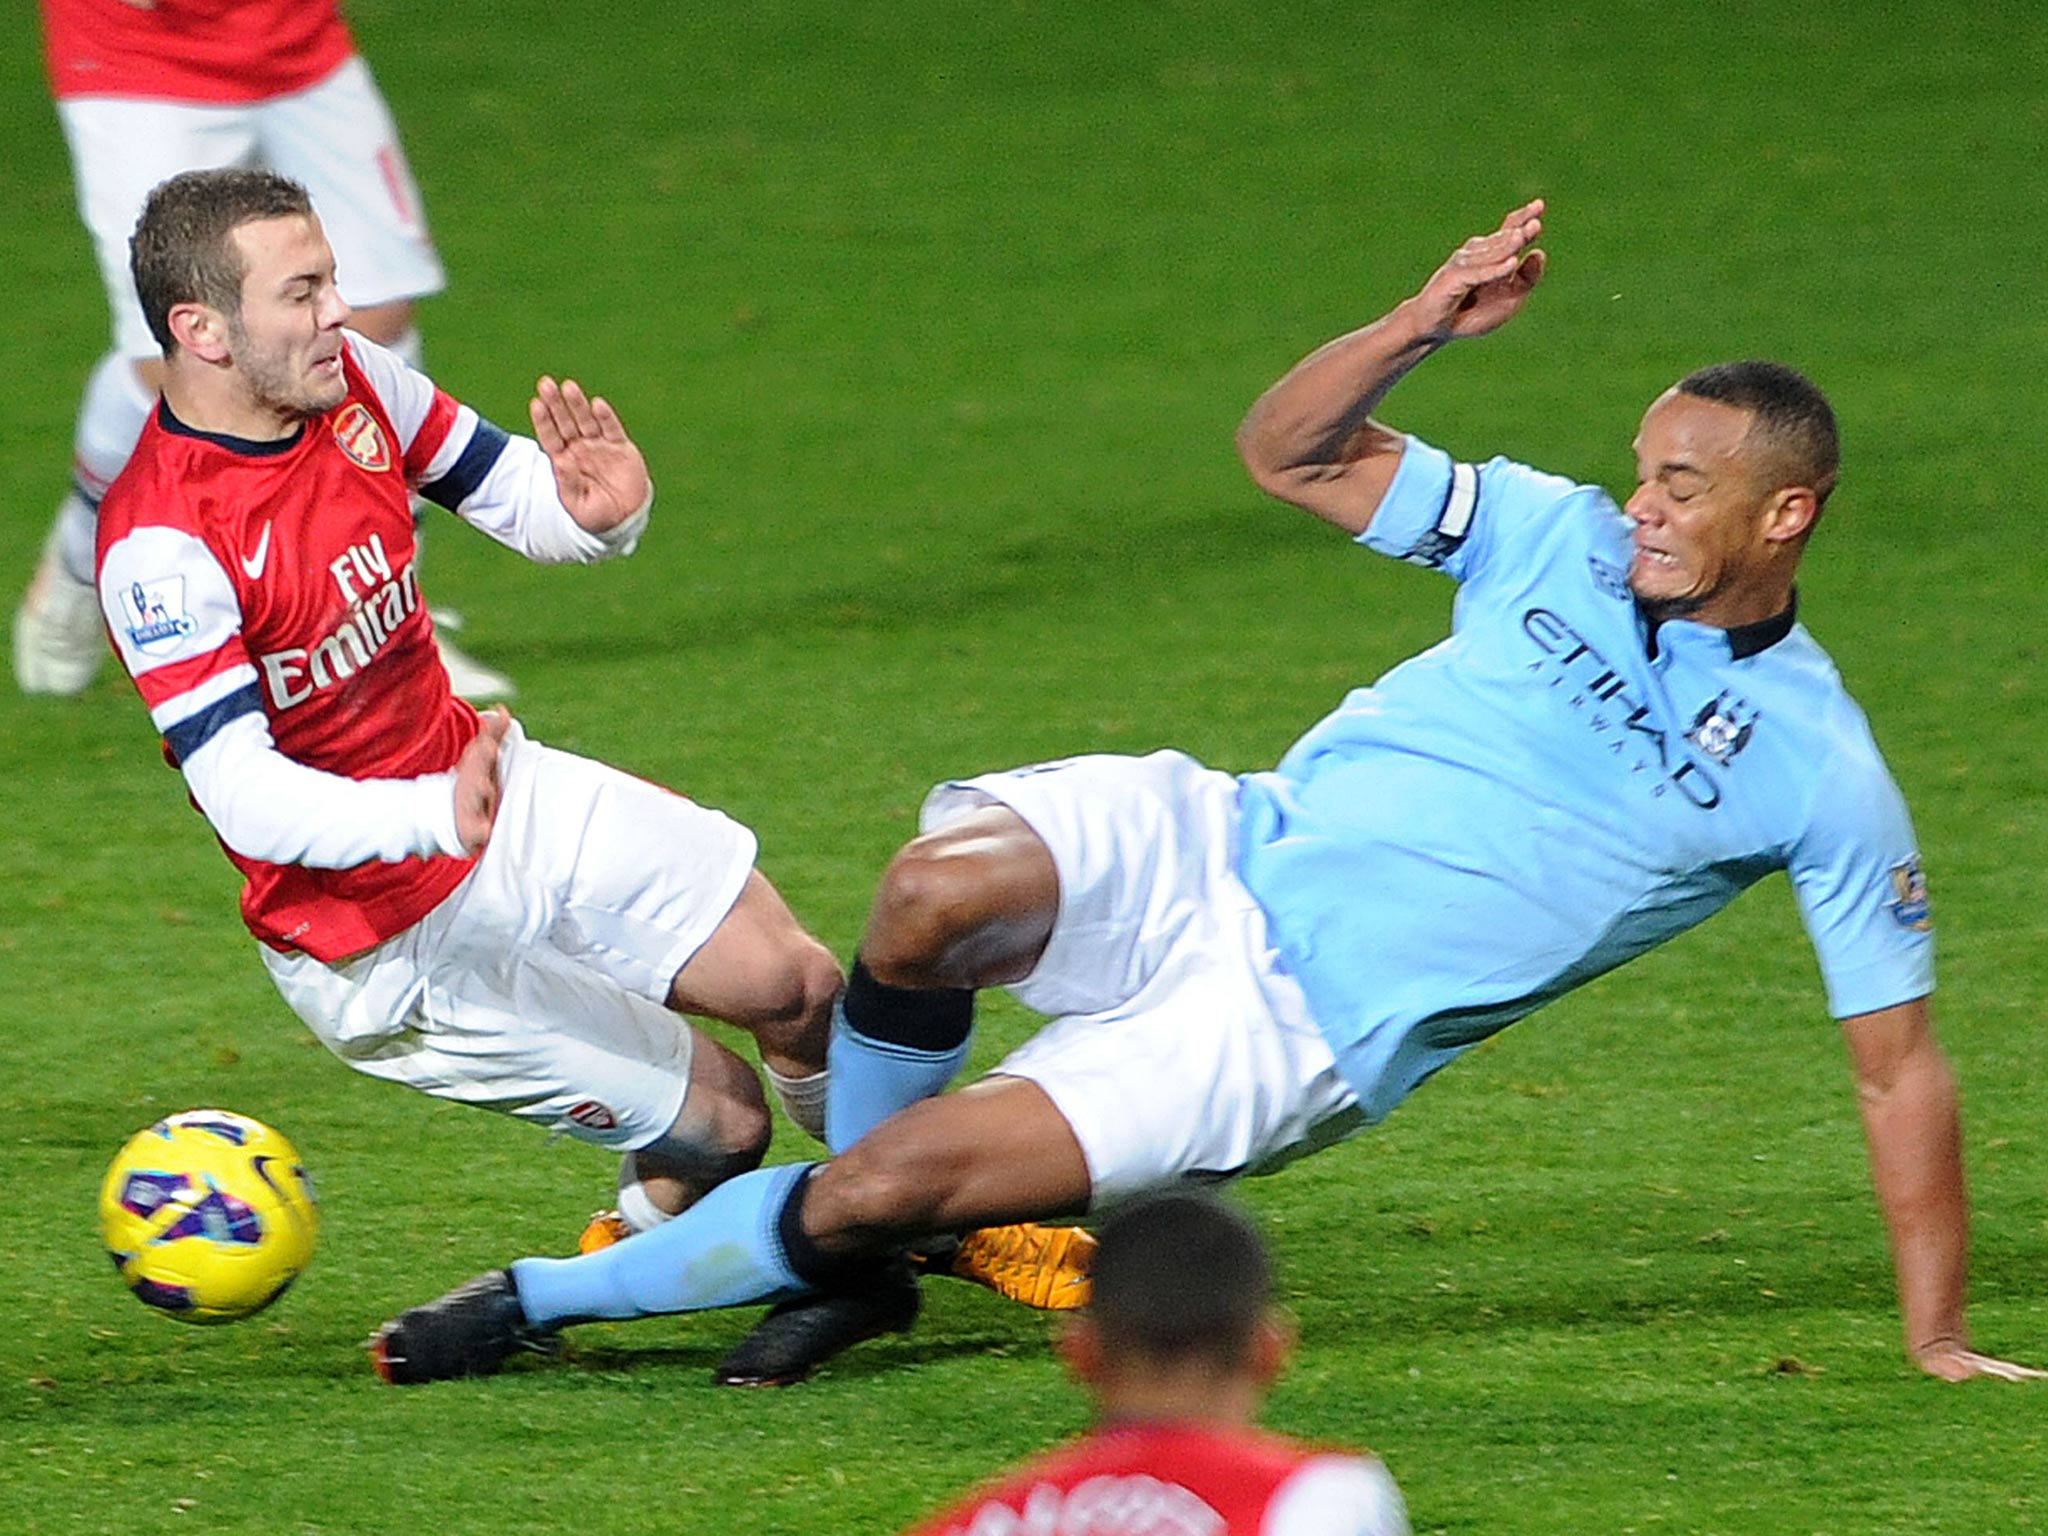 Manchester City relief as Vincent Kompany has red card overturned